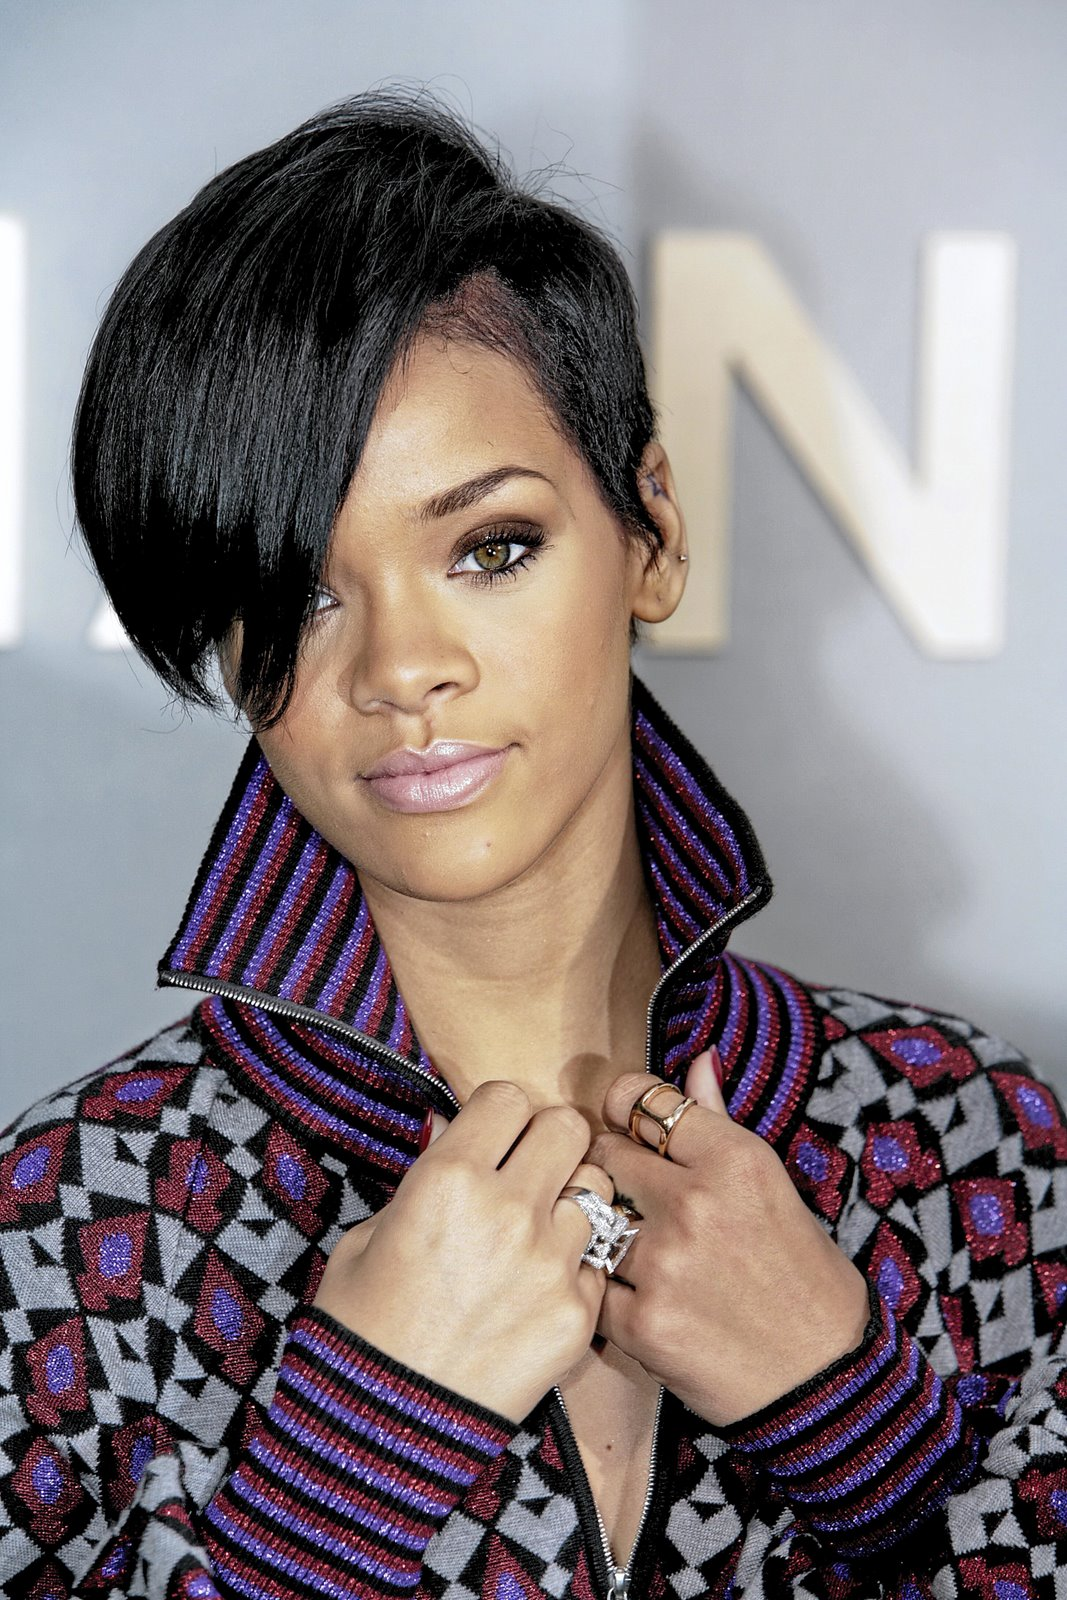 rihanna hairstyle 30 Beautiful Black Girl Hairstyles. 1067 x 1600.No Heat Hairstyles Black Women